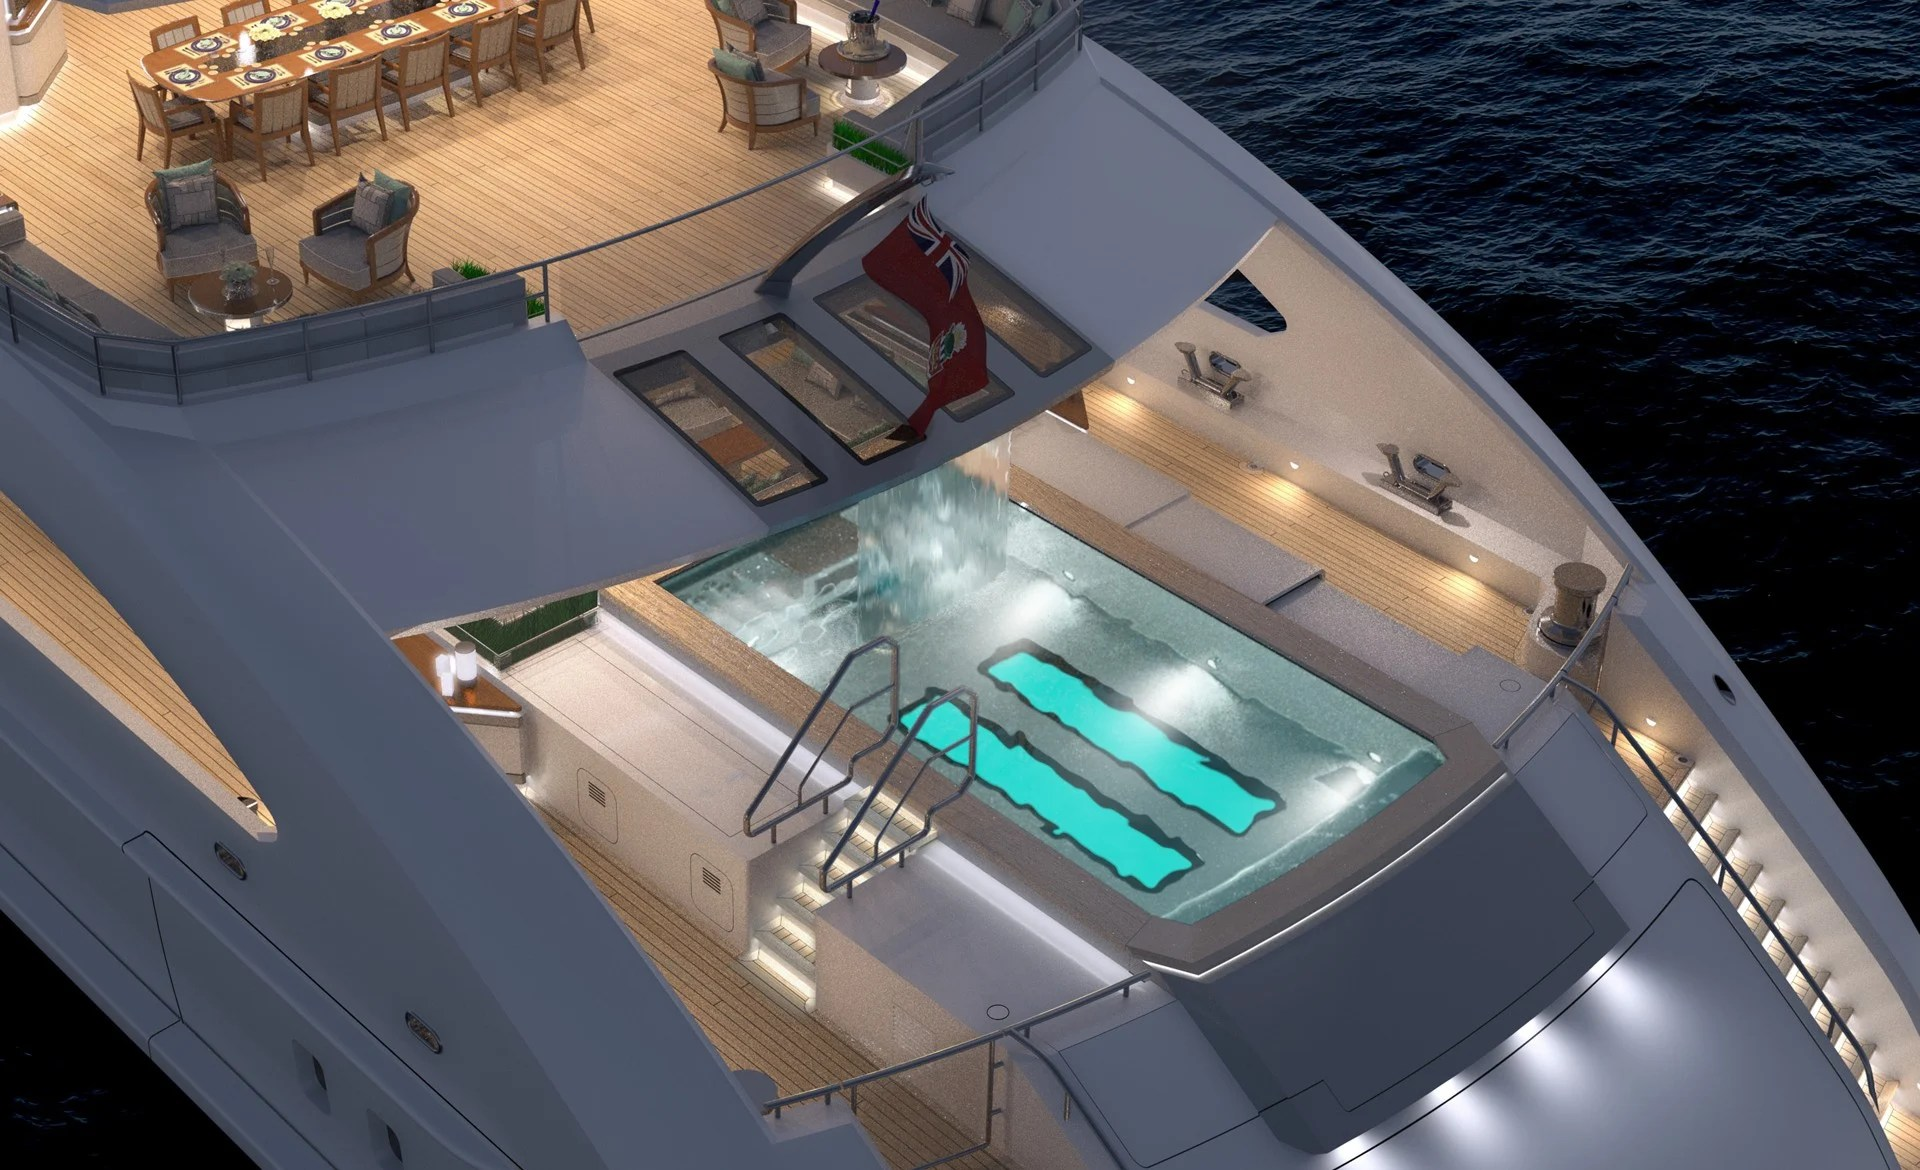 5 Super Yachts With Waterfalls In Them